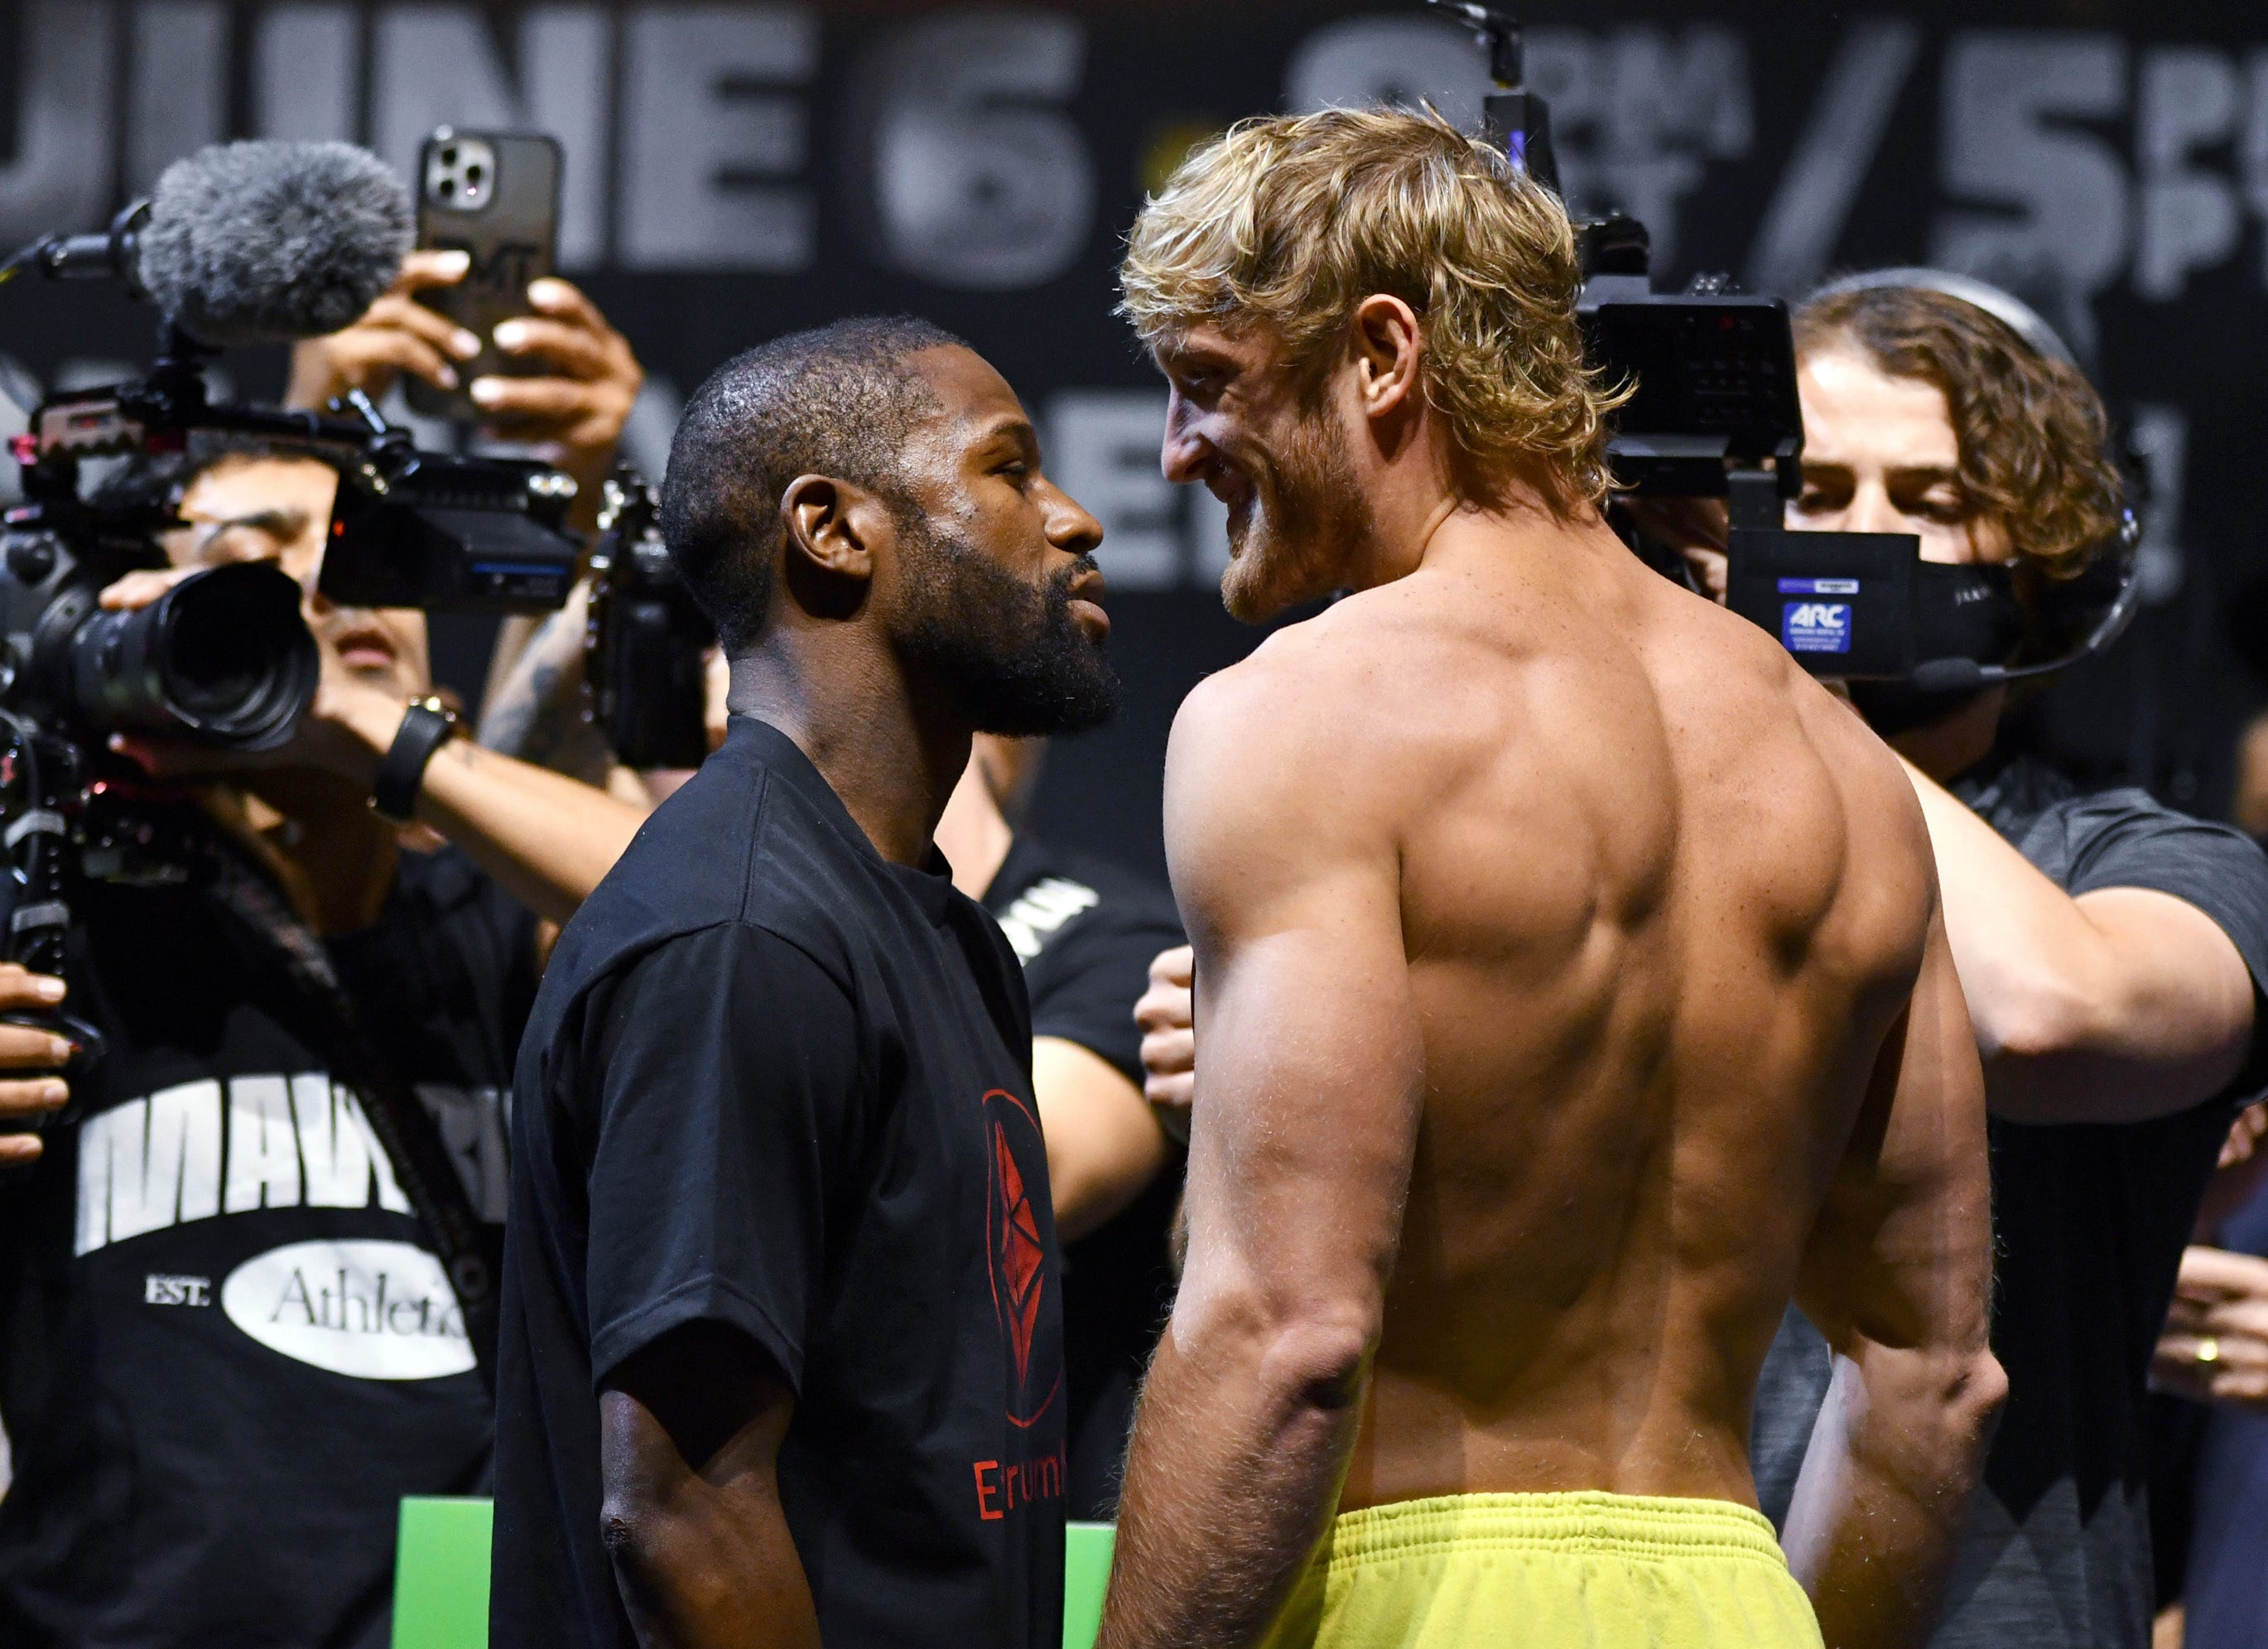 Floyd Mayweather vs. Logan Paul: Live round-by-round updates of the exhibition boxing match